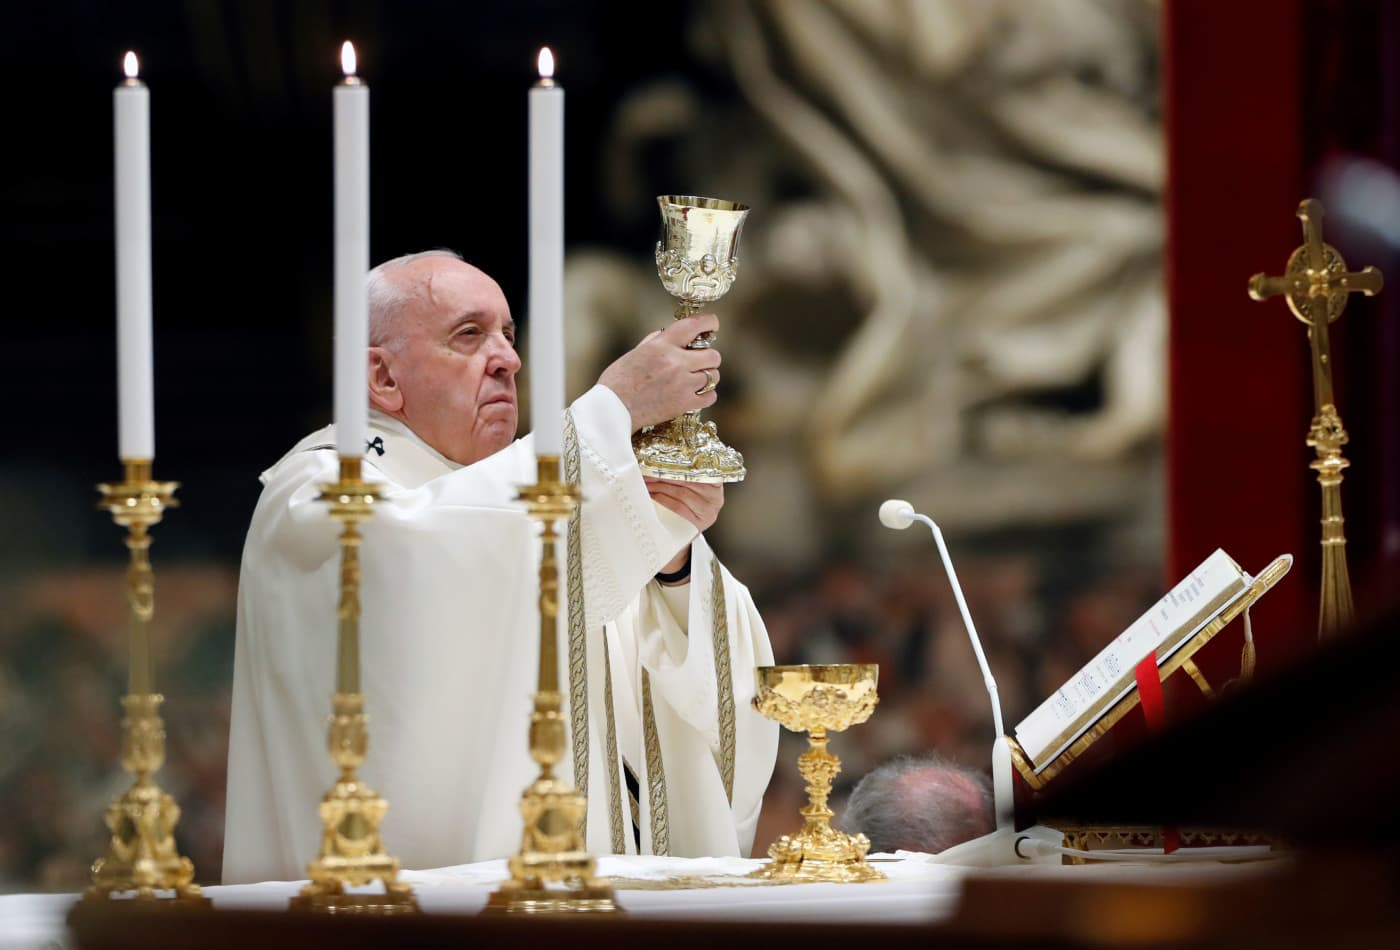 Pope Francis leads the Easter vigil Mass in St. Peter's Basilica with no public participation due to the outbreak of coronavirus at the Vatican